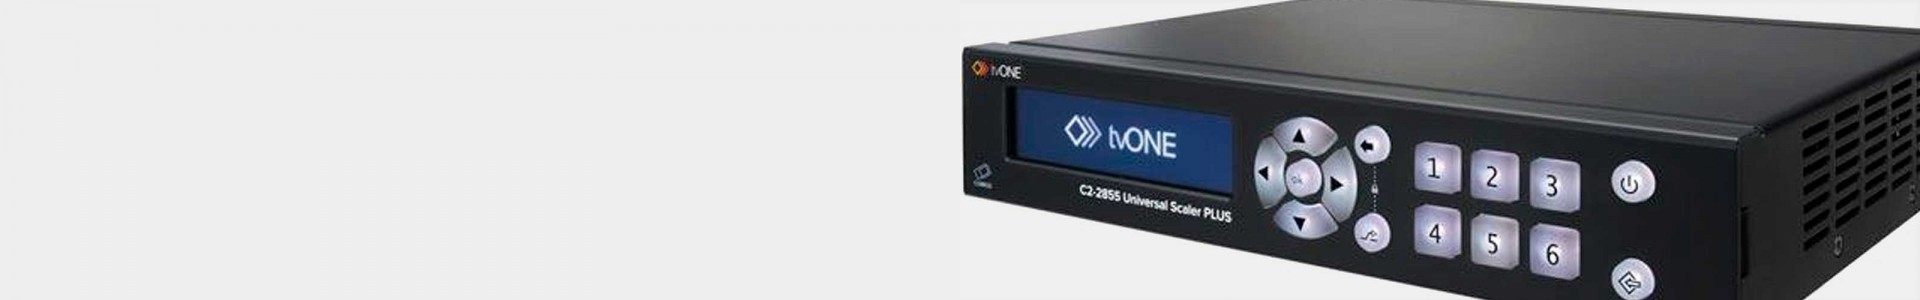 tvONE scalers, multiscreens and professional converters - Avacab